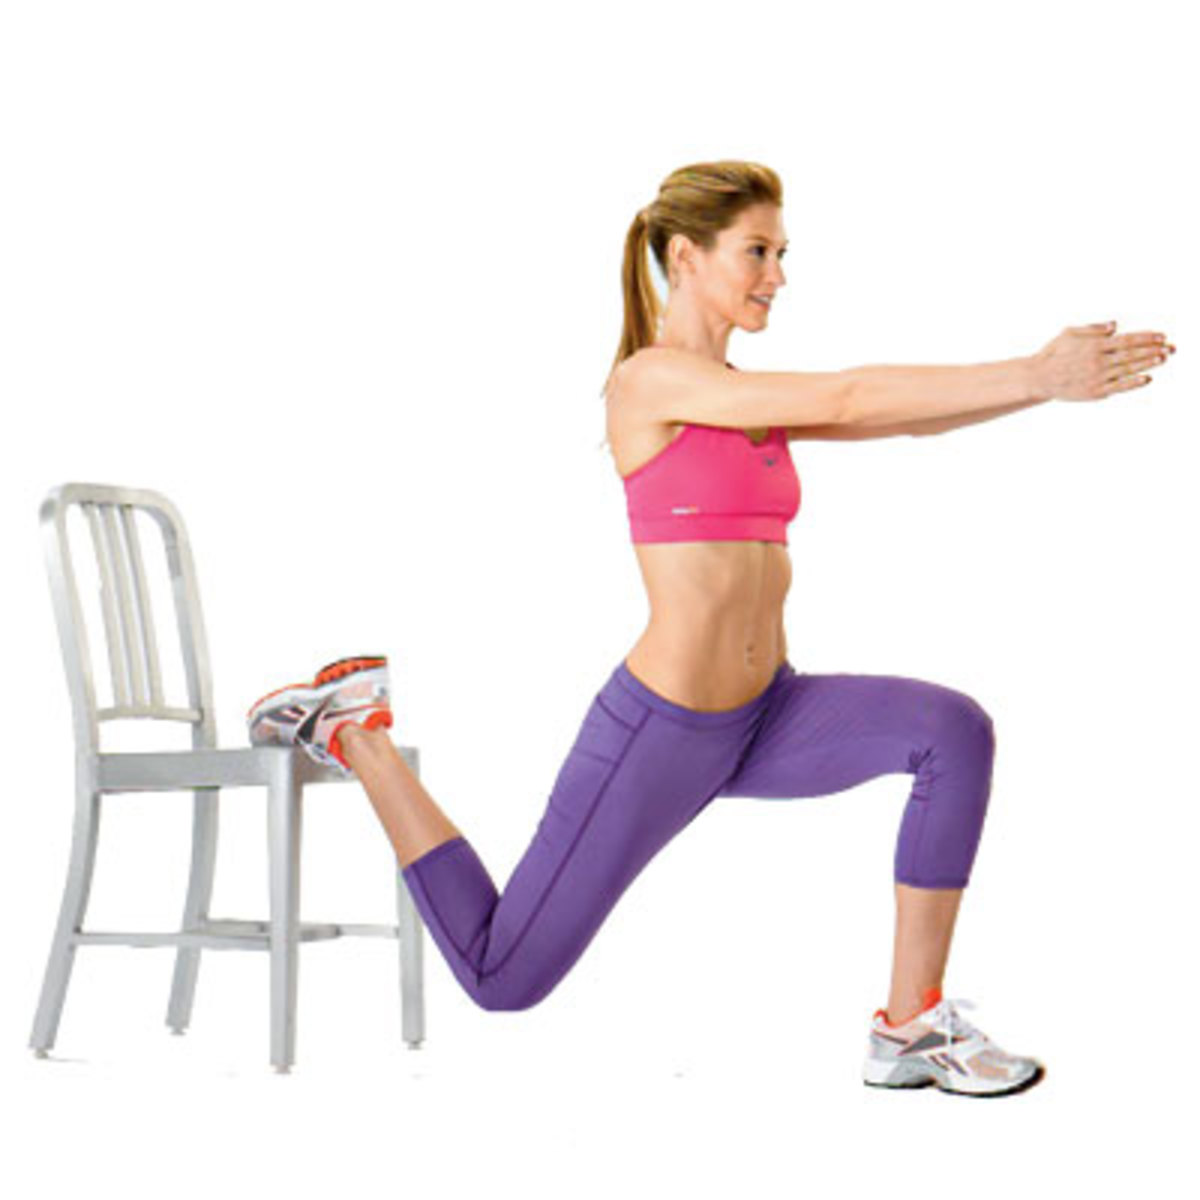 One Leg Squat - Split Squat